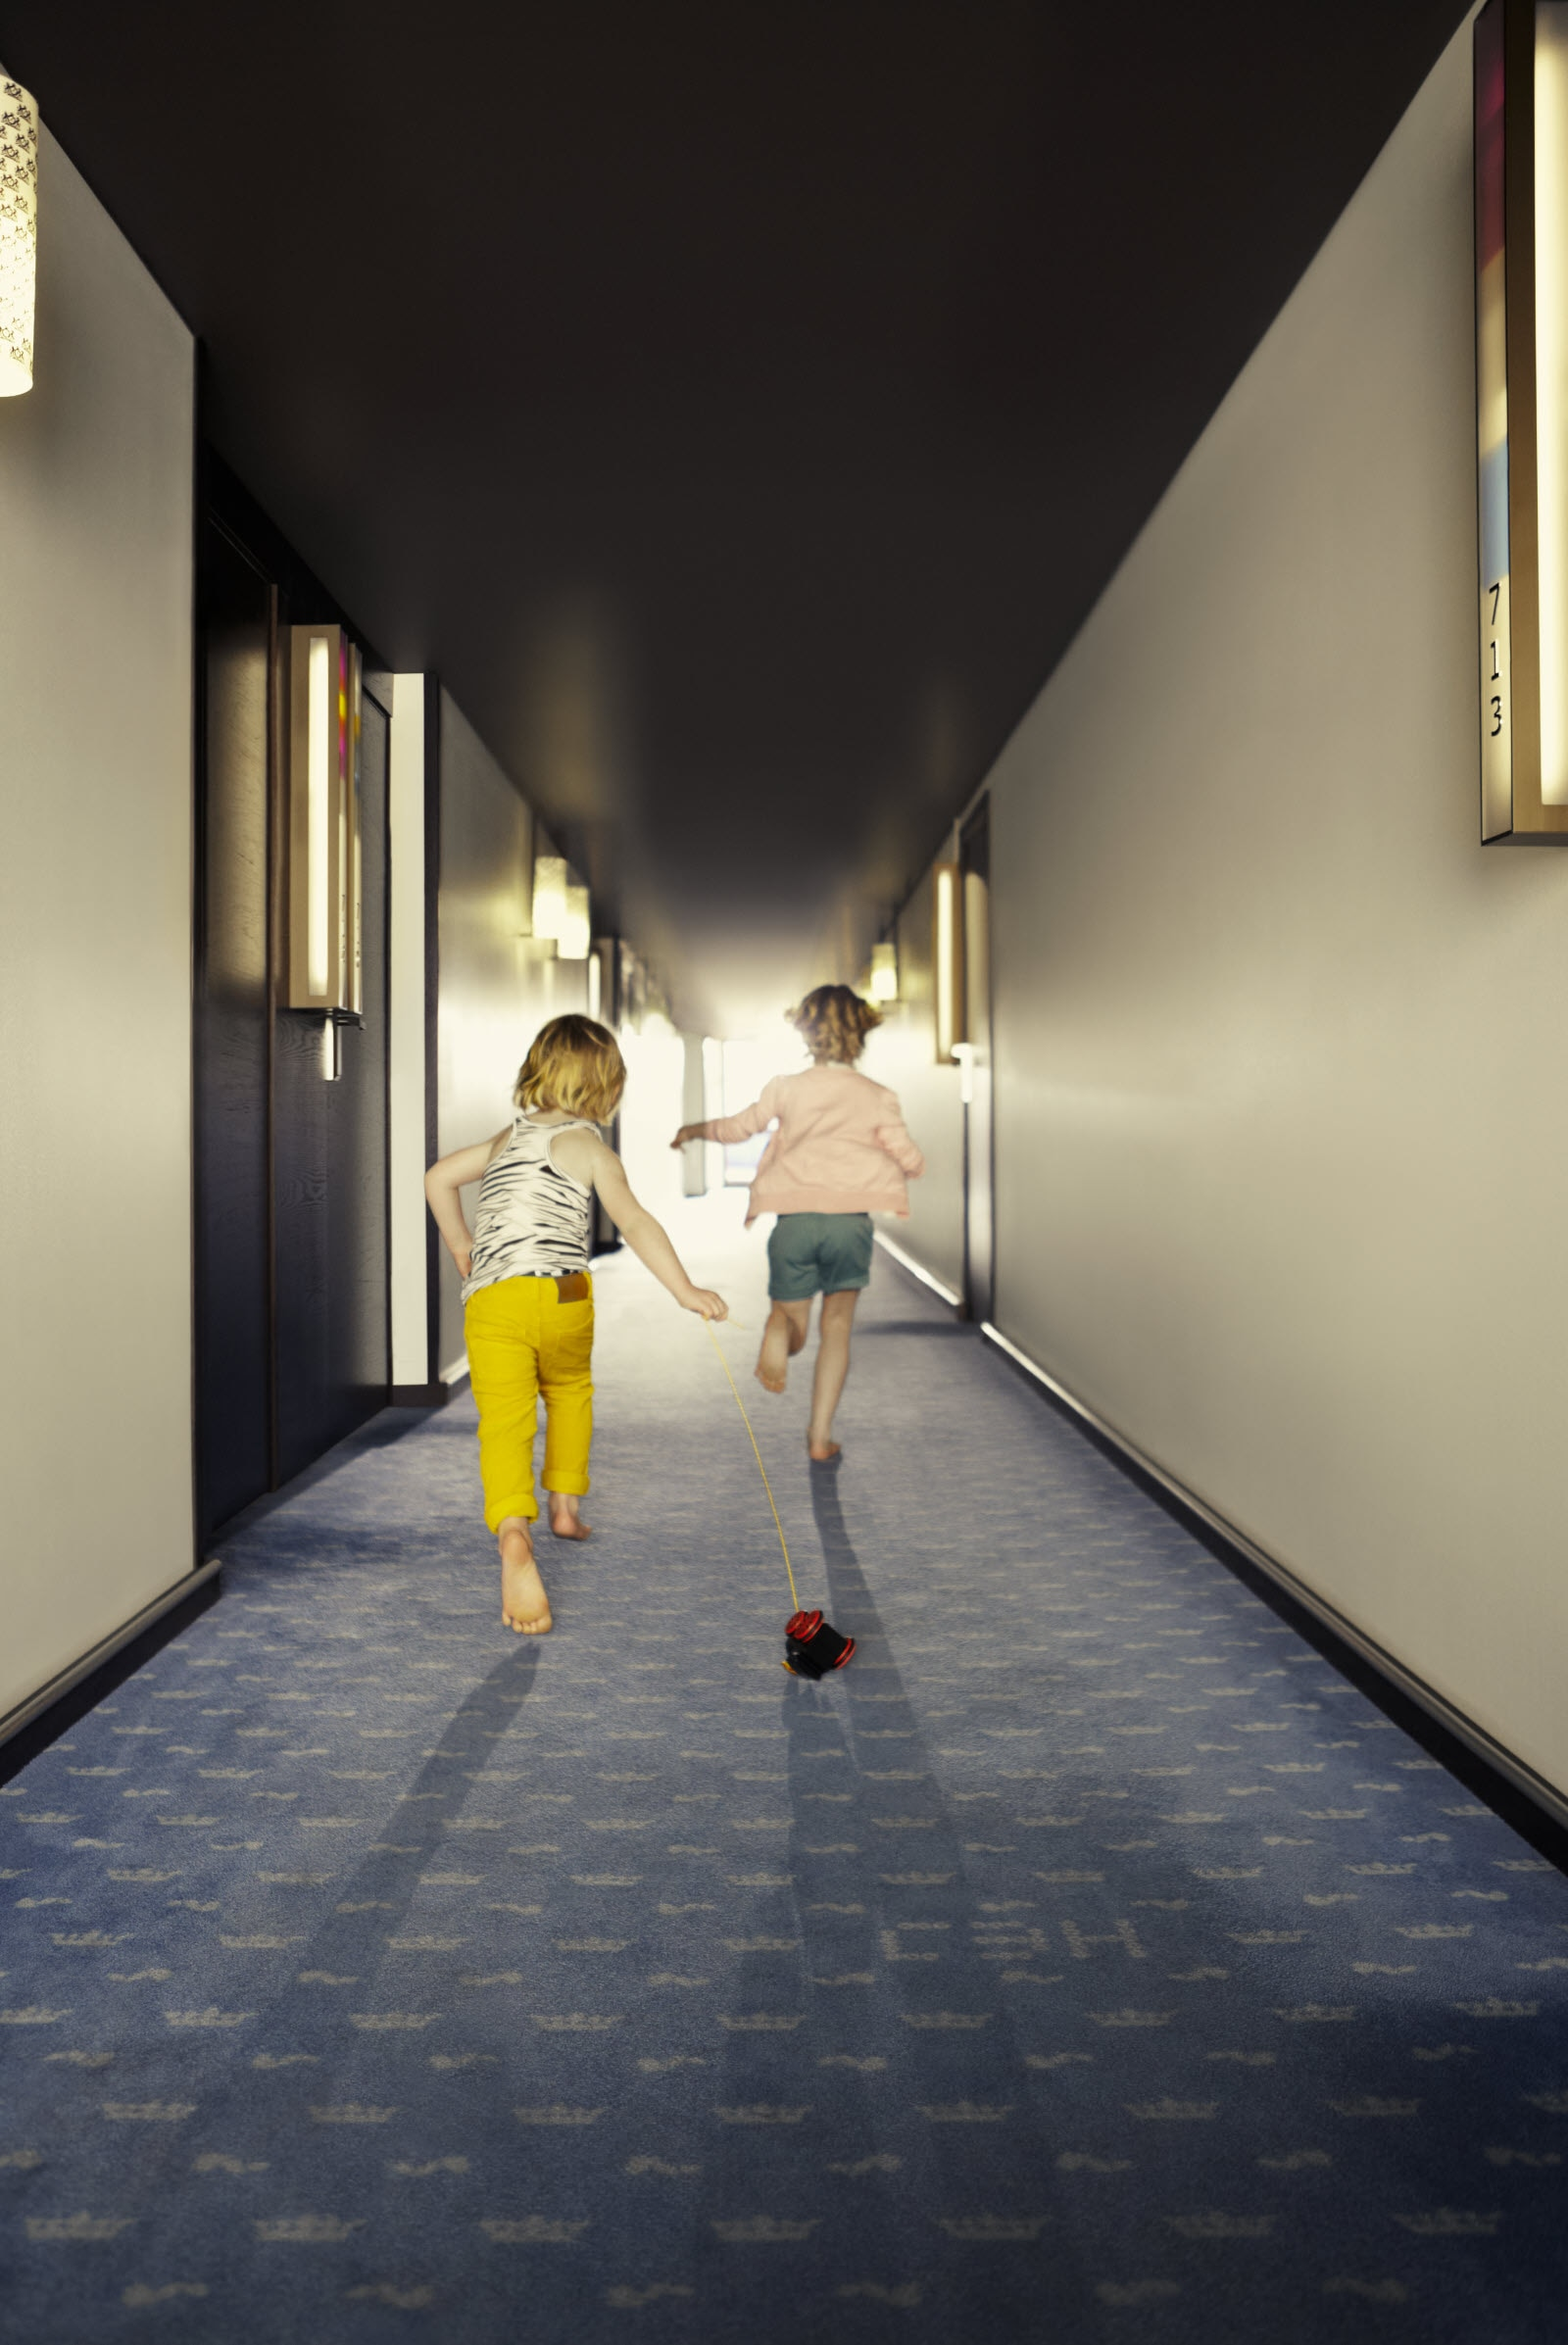 ccc-people-kids-corridor-family-leisure-play-child.jpg